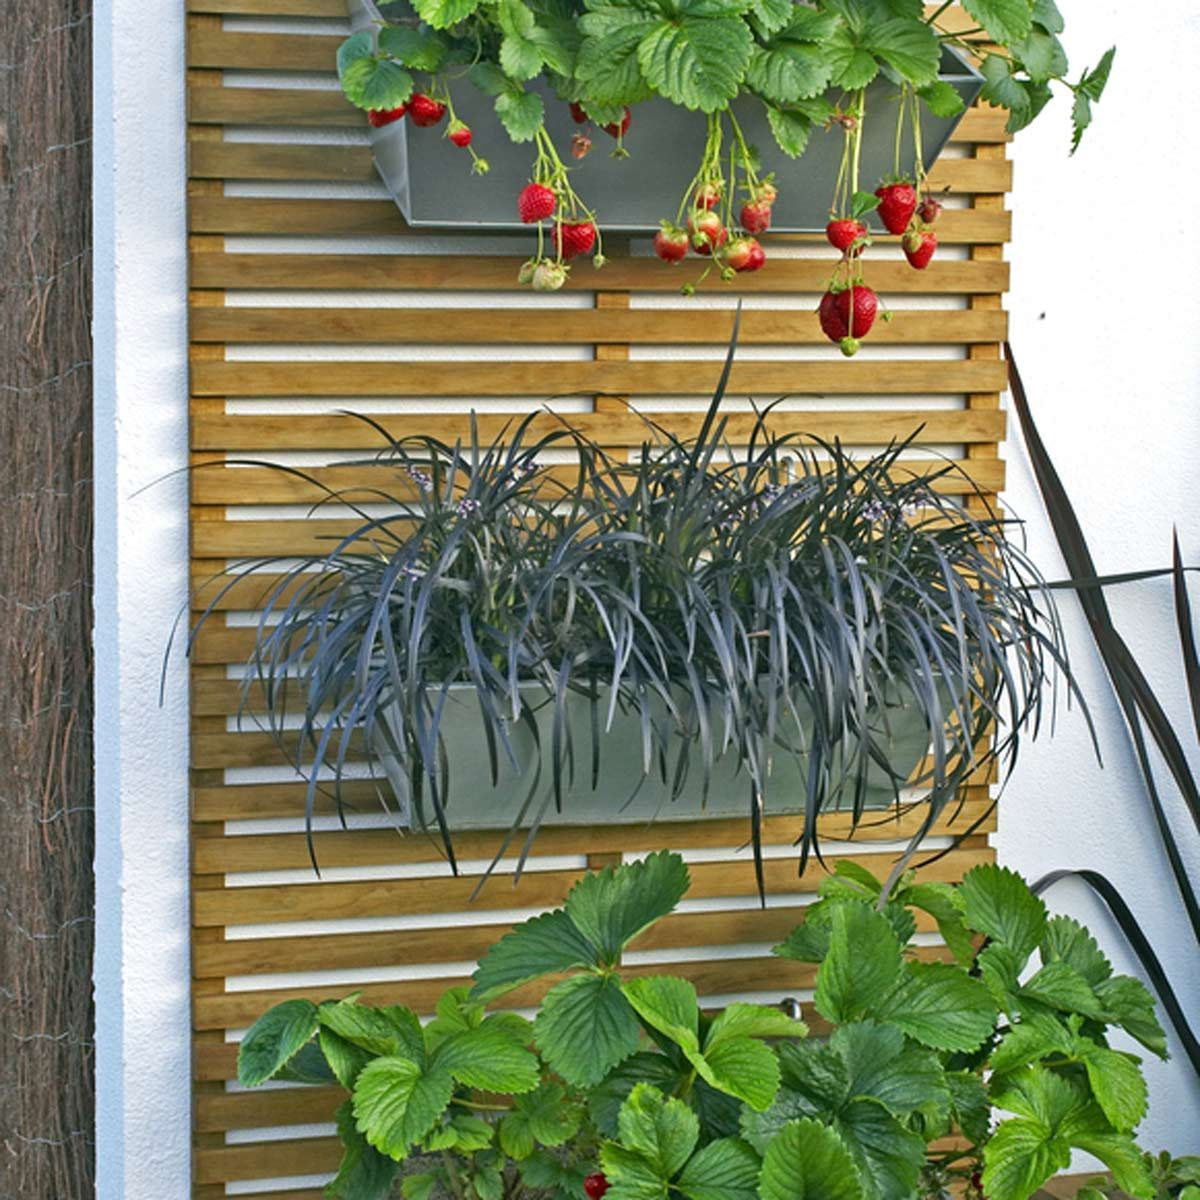 backyard ideas for small yards using hanging plants